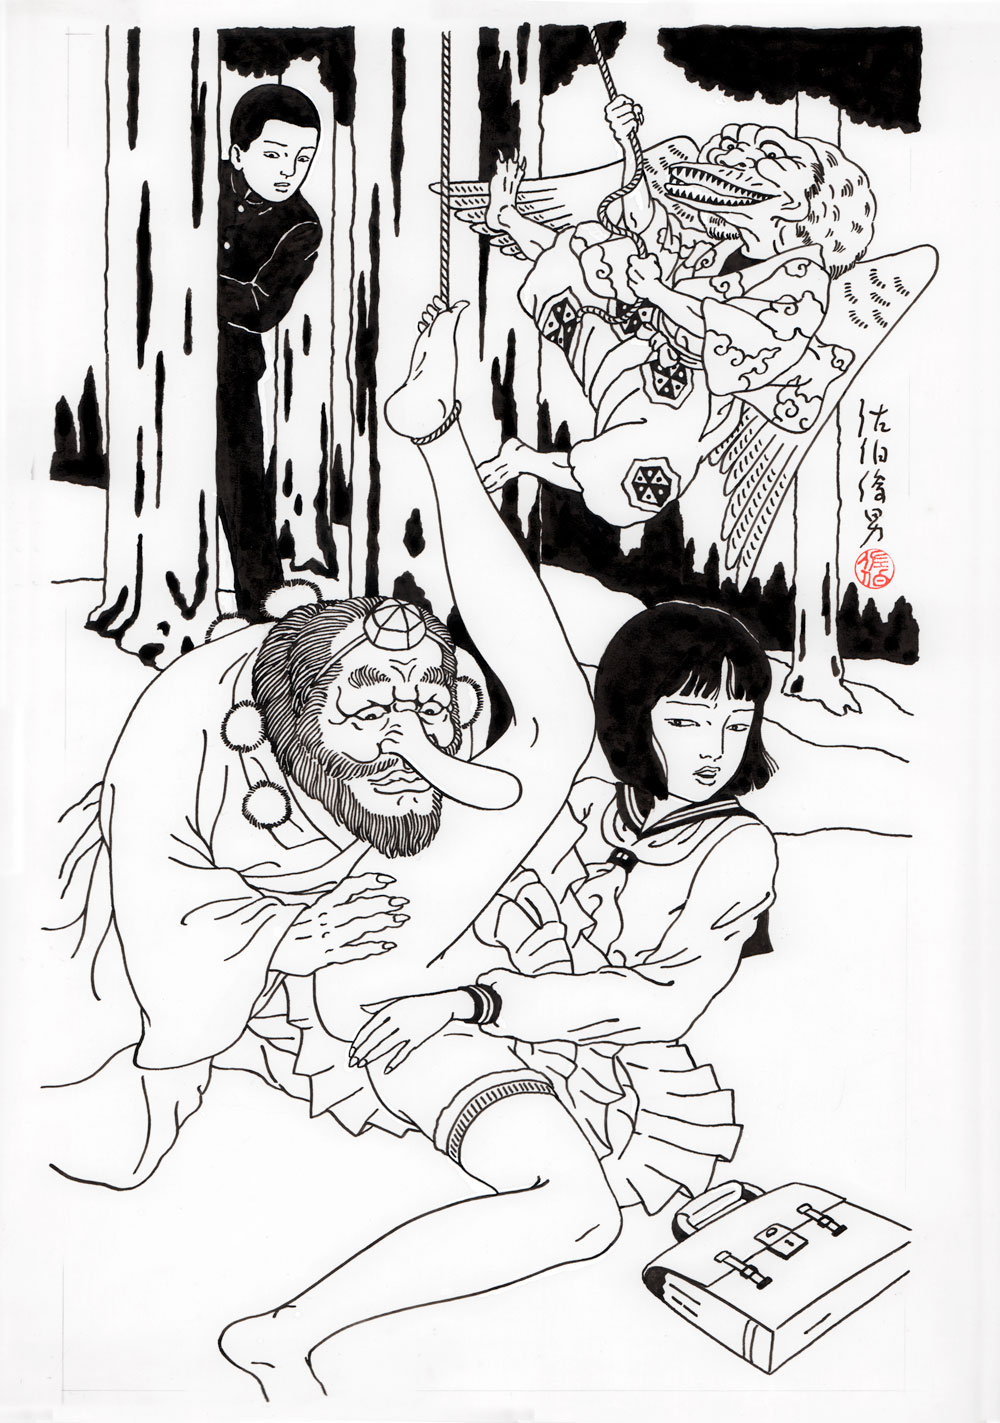 Toshio SaekiMichikusatengu, 1977Ink on paper.12.25 x 18 in. unframed